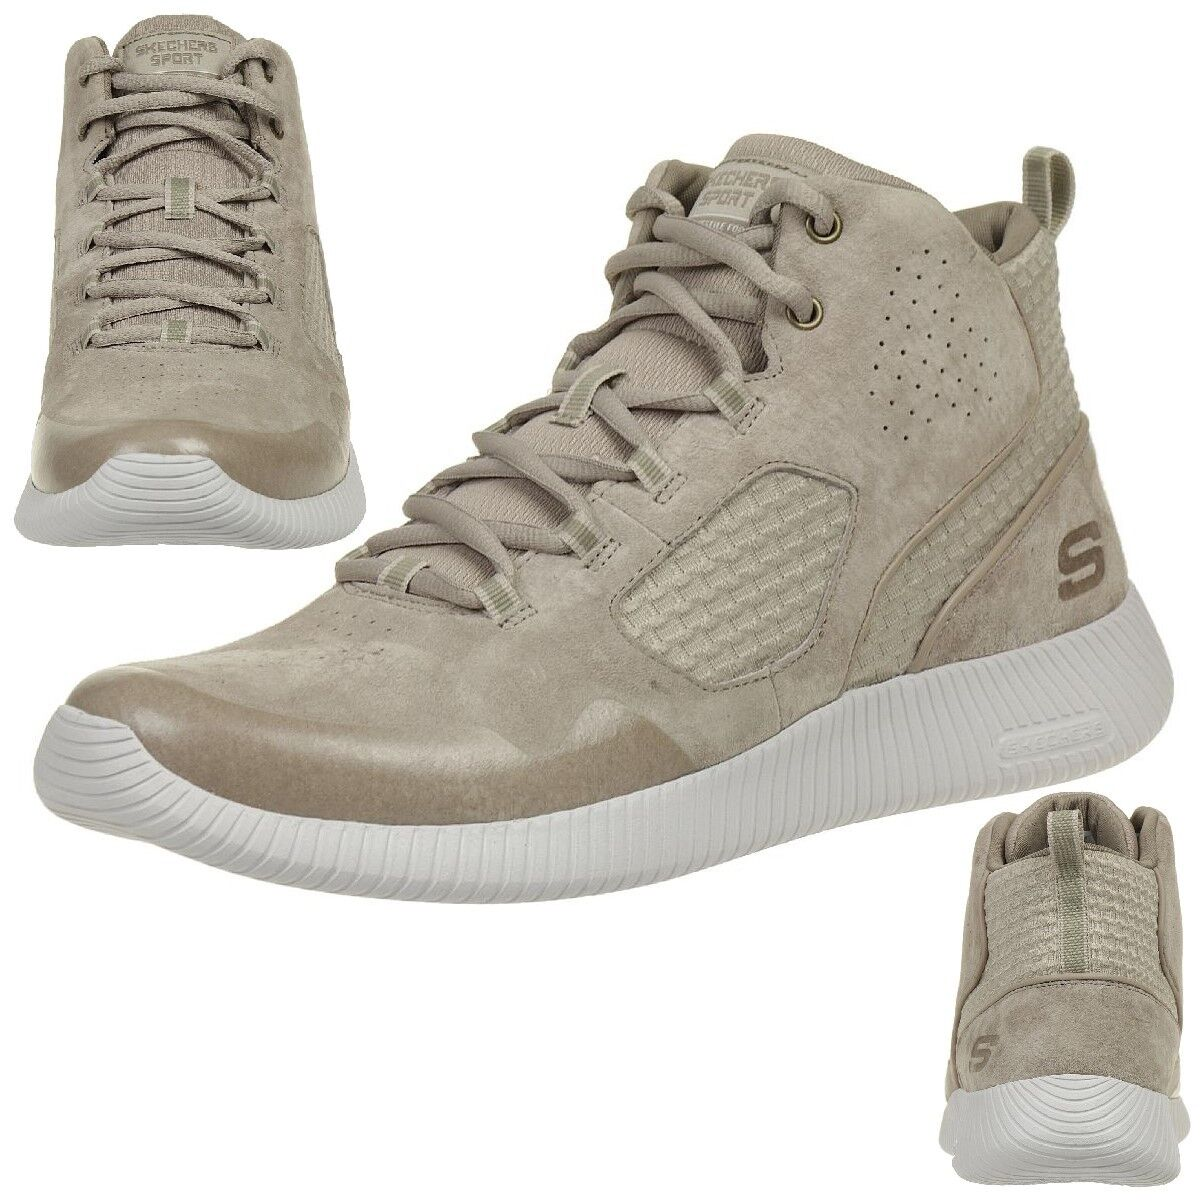 Skechers depth Charge drango calcetines cortos outdoor zapatos Taupe beige